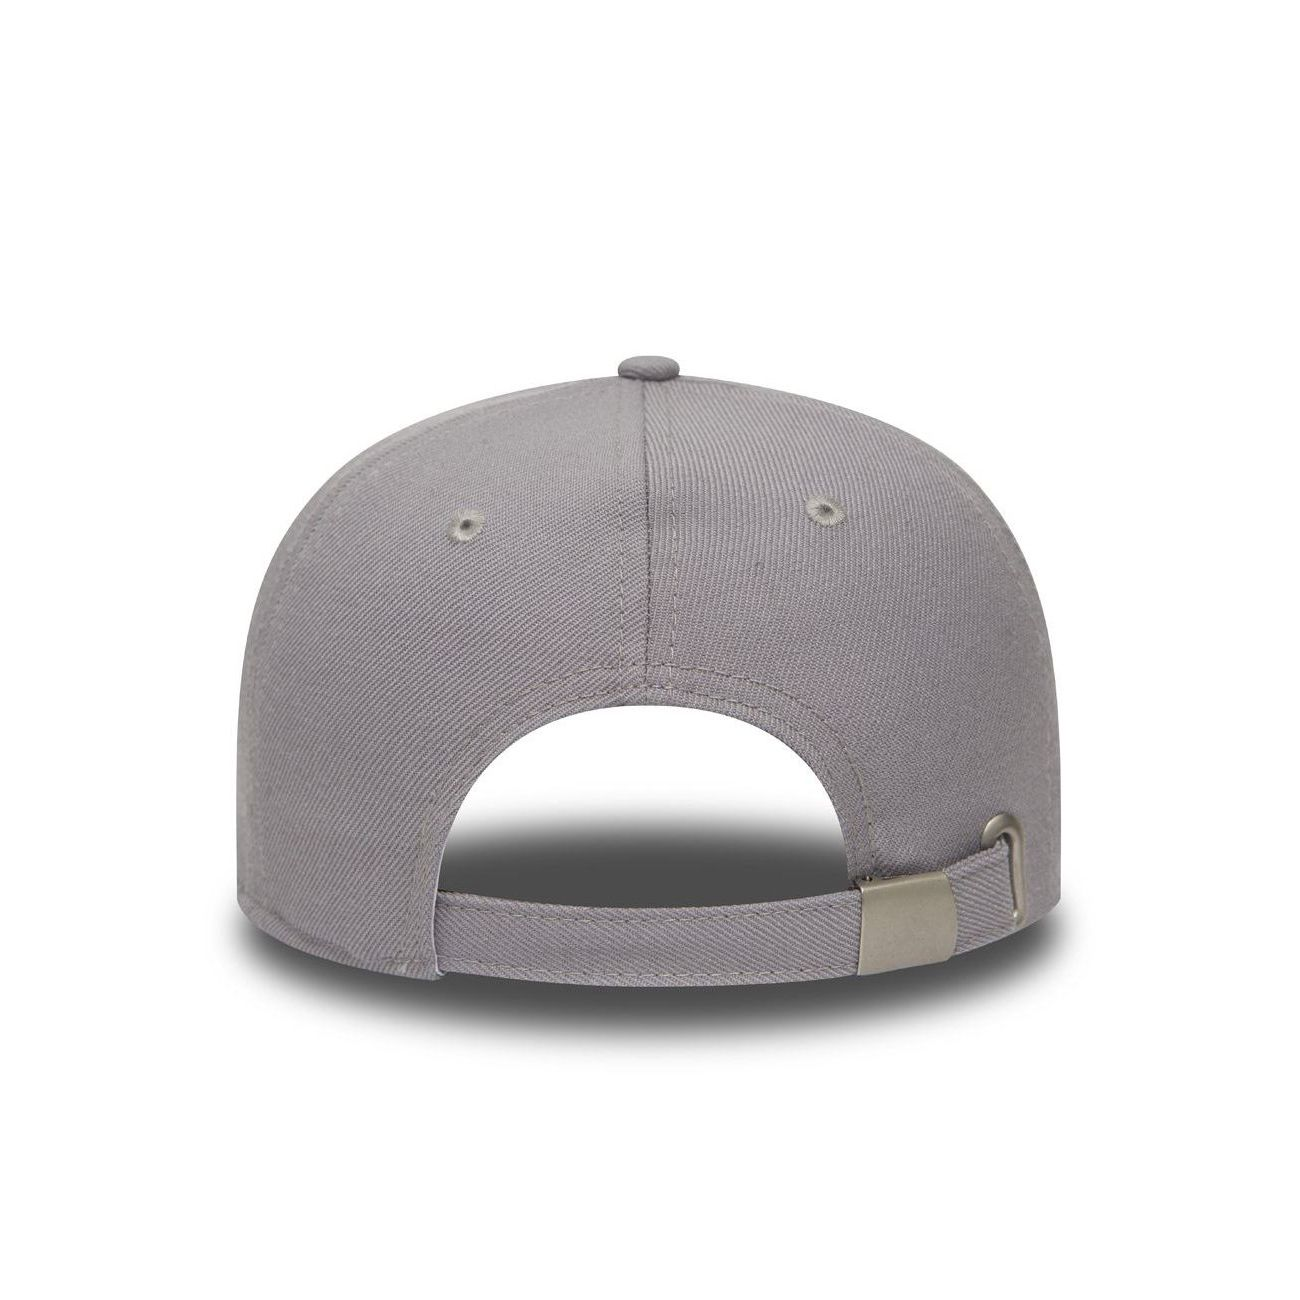 Mode- Lifestyle adulte NEW ERA Casquette Incurvée New Era Chicago White Sox City Series Low Profile 9Fifty Gris Laine